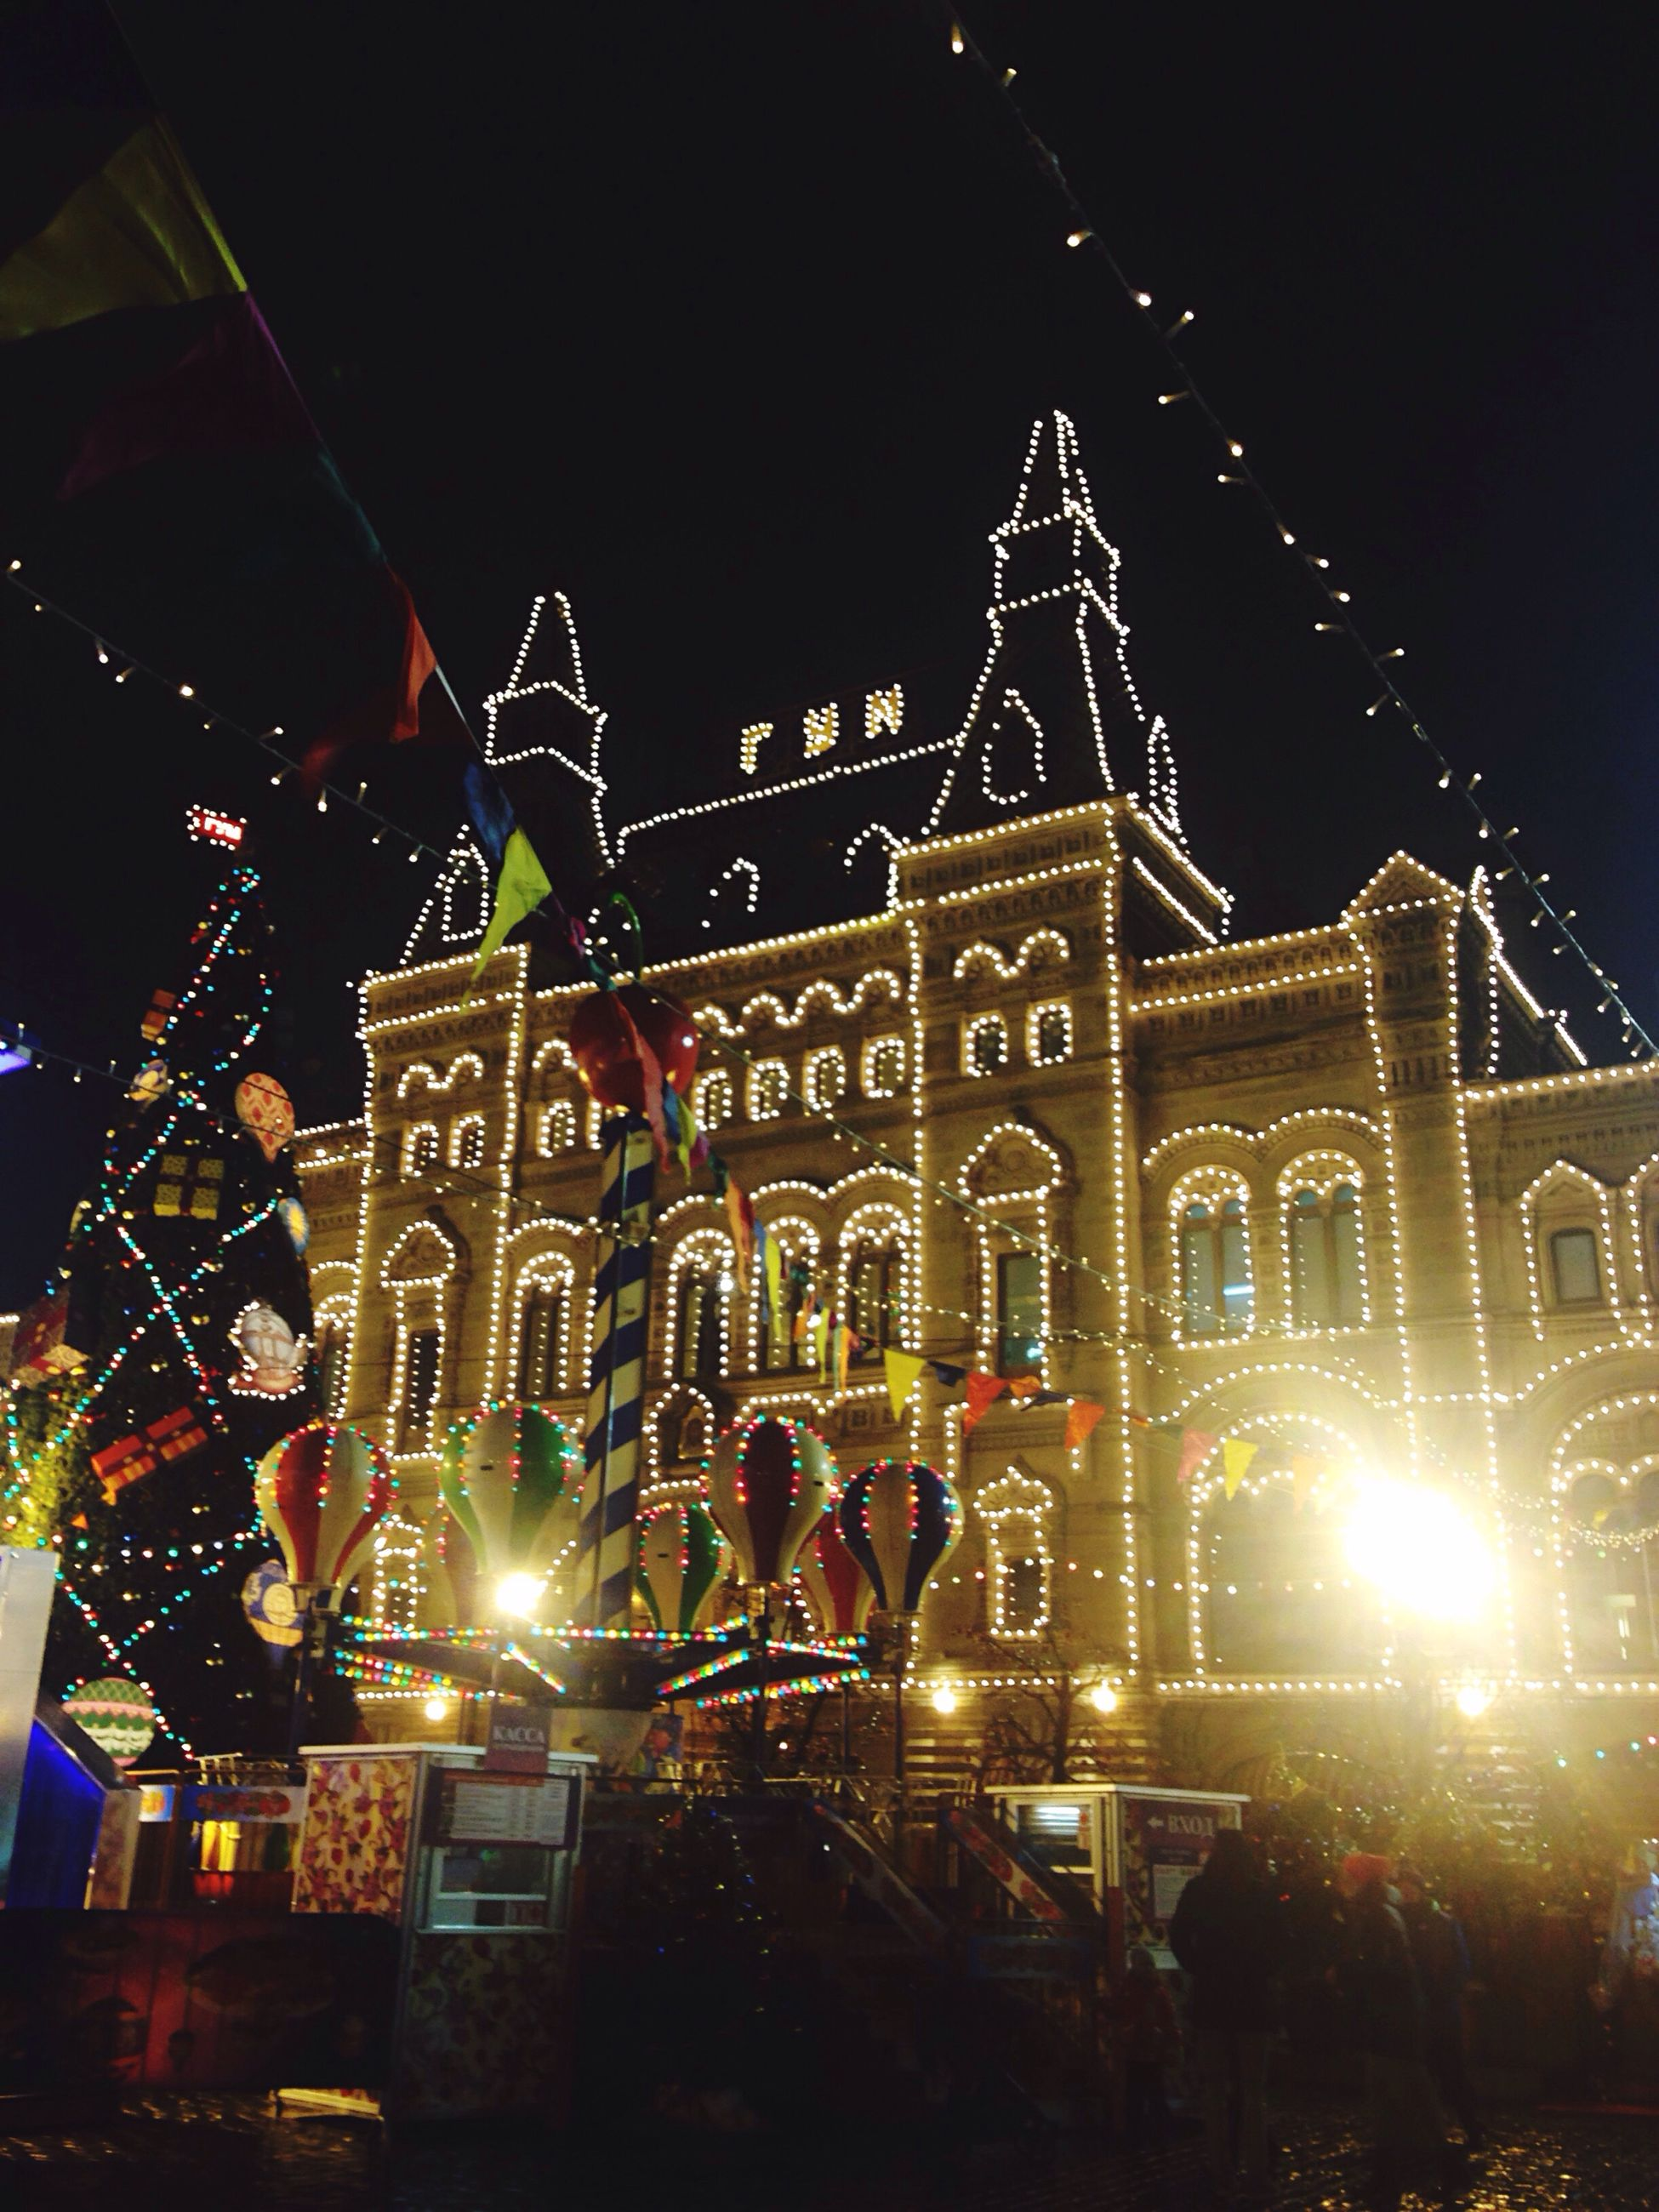 night, illuminated, large group of people, built structure, architecture, building exterior, outdoors, real people, celebration, arts culture and entertainment, amusement park, christmas lights, men, place of worship, crowd, sky, women, clear sky, city, people